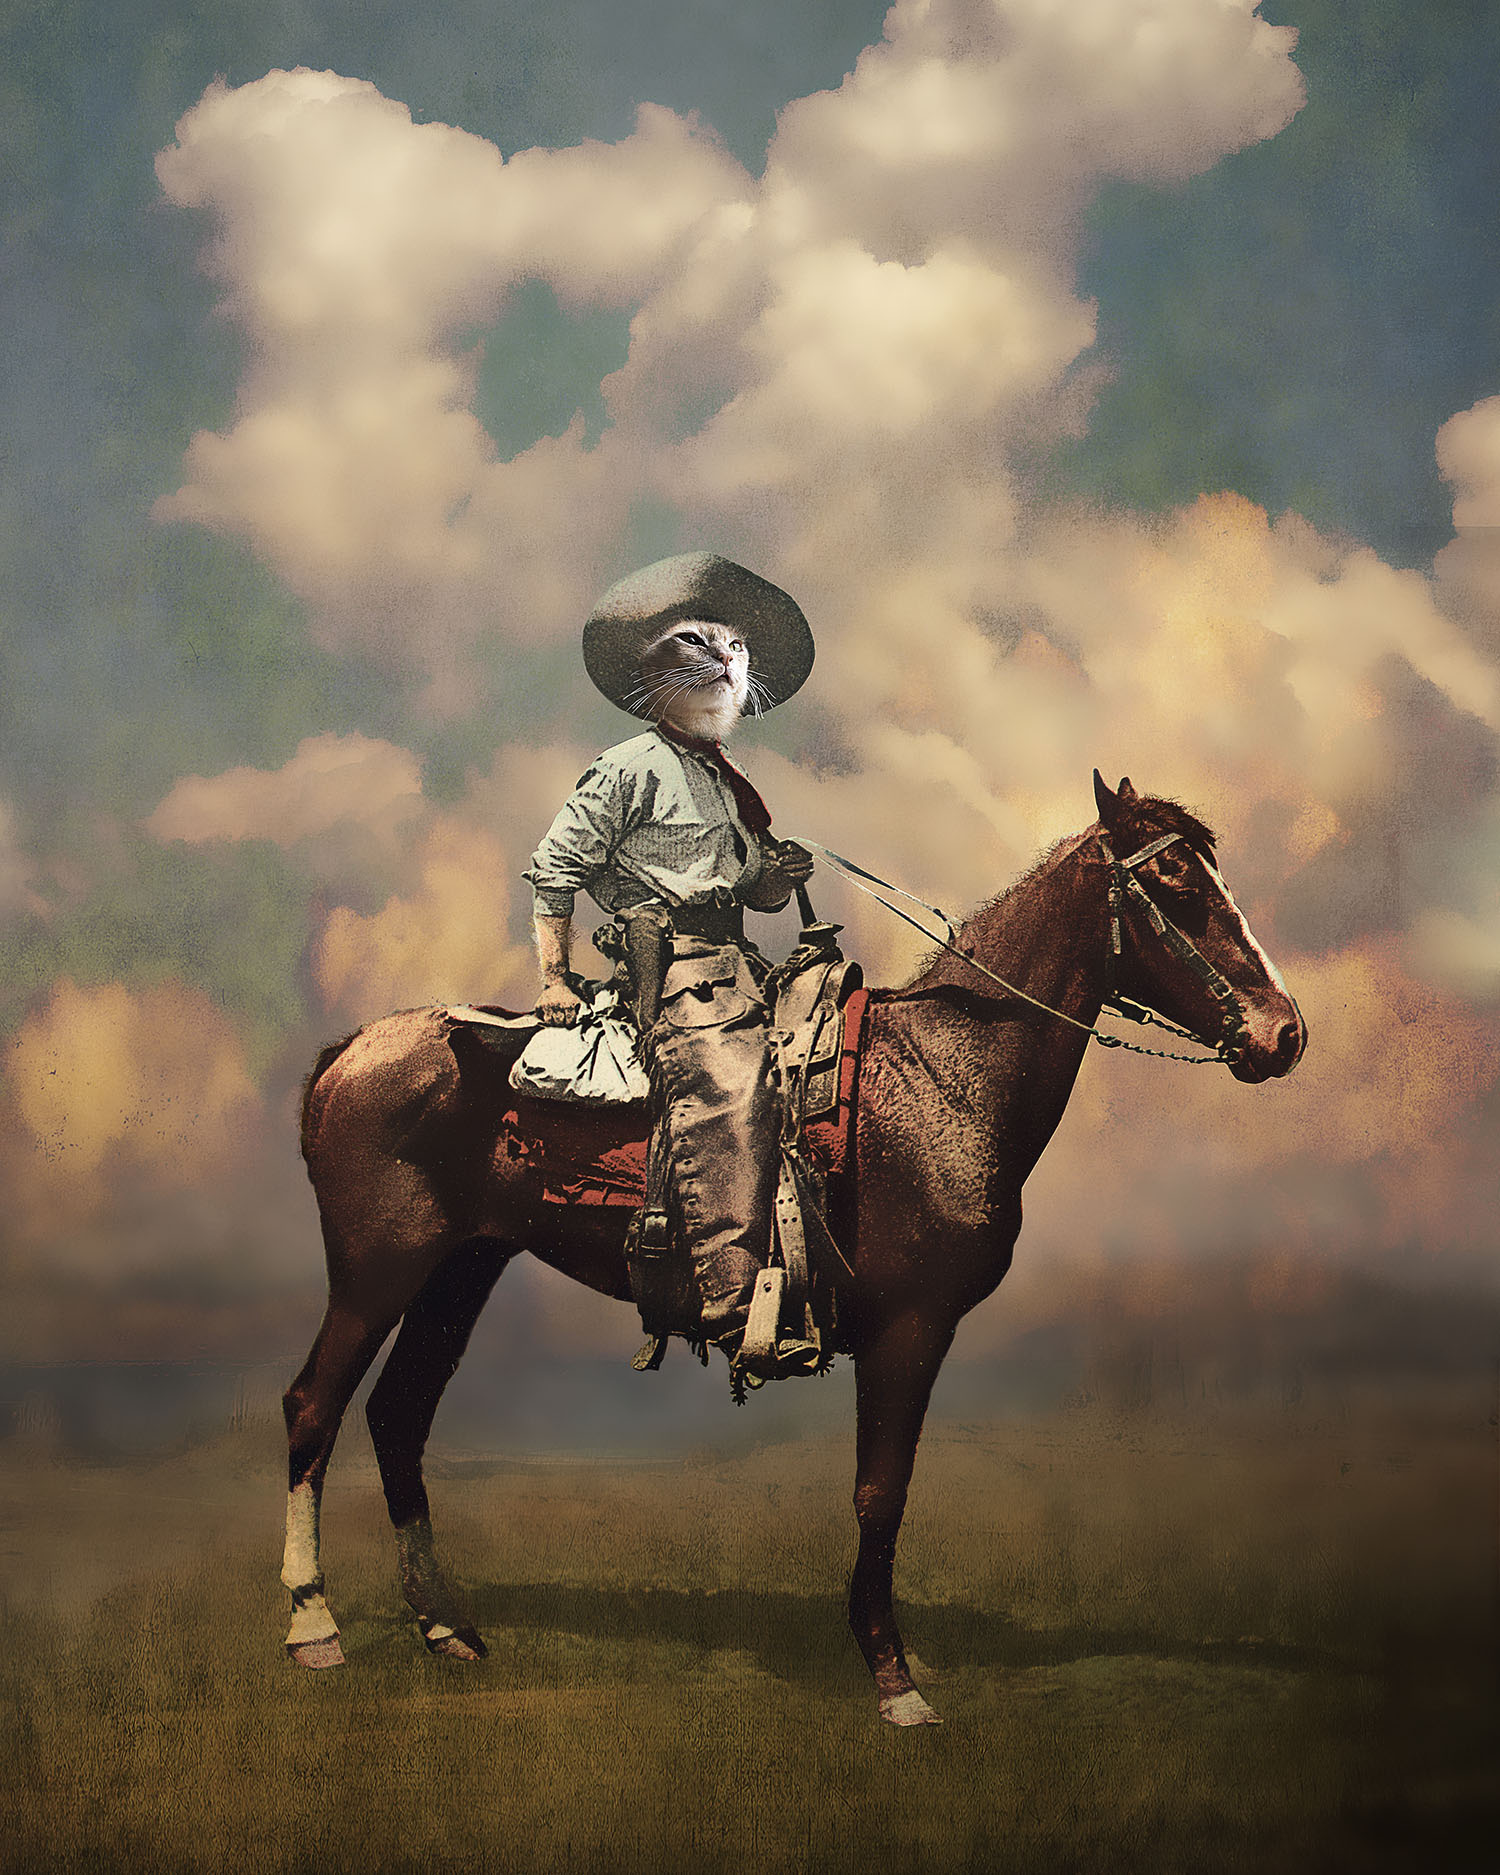 The Glorious Cowboy